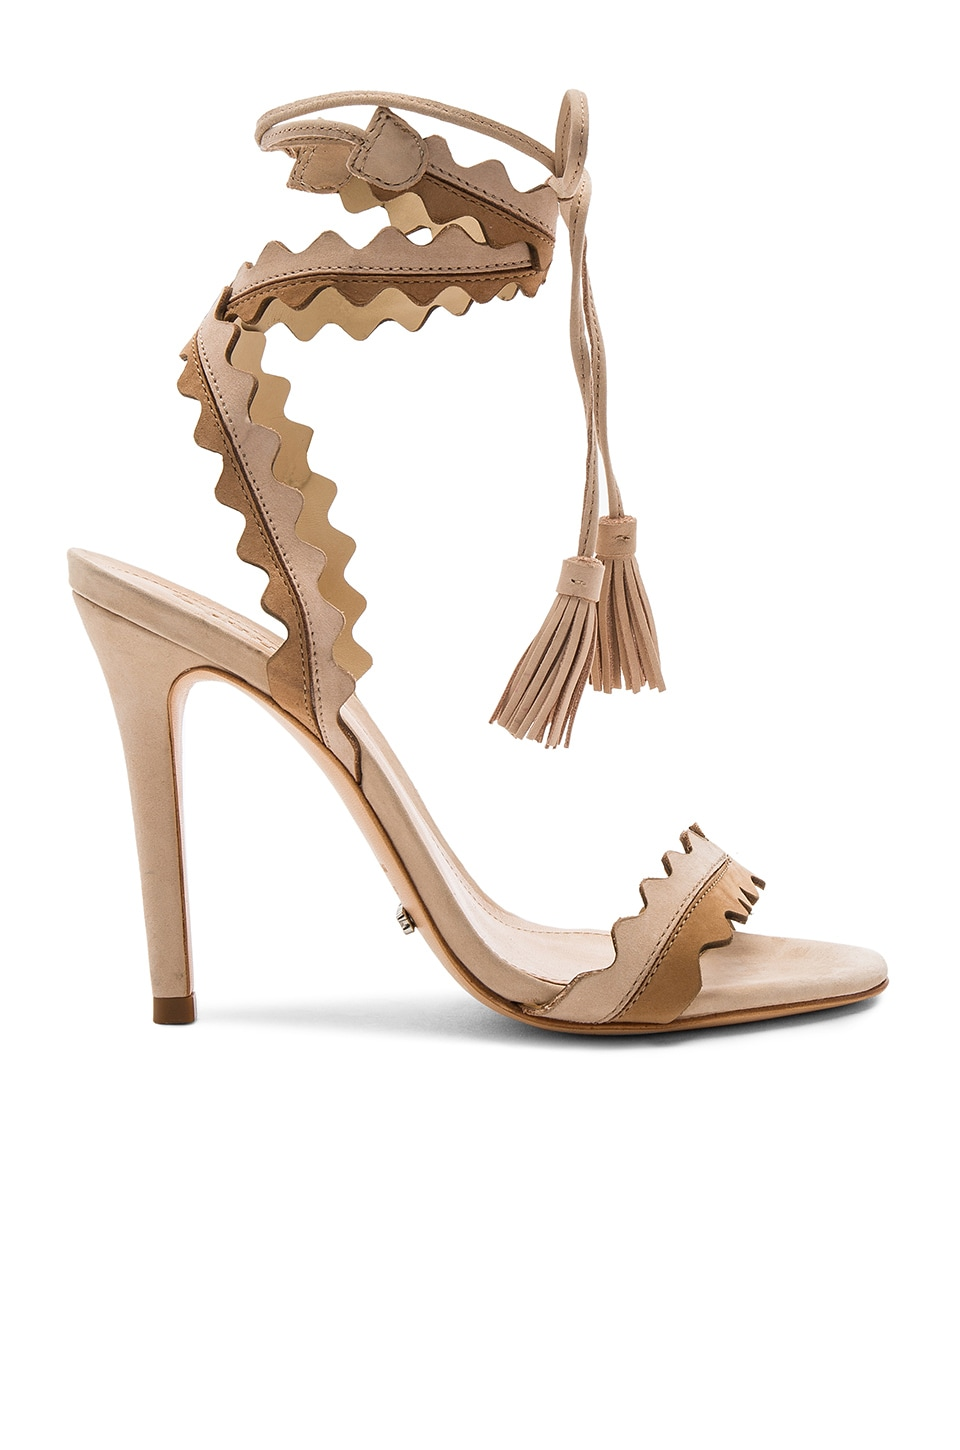 Love this gorgeous sandal!